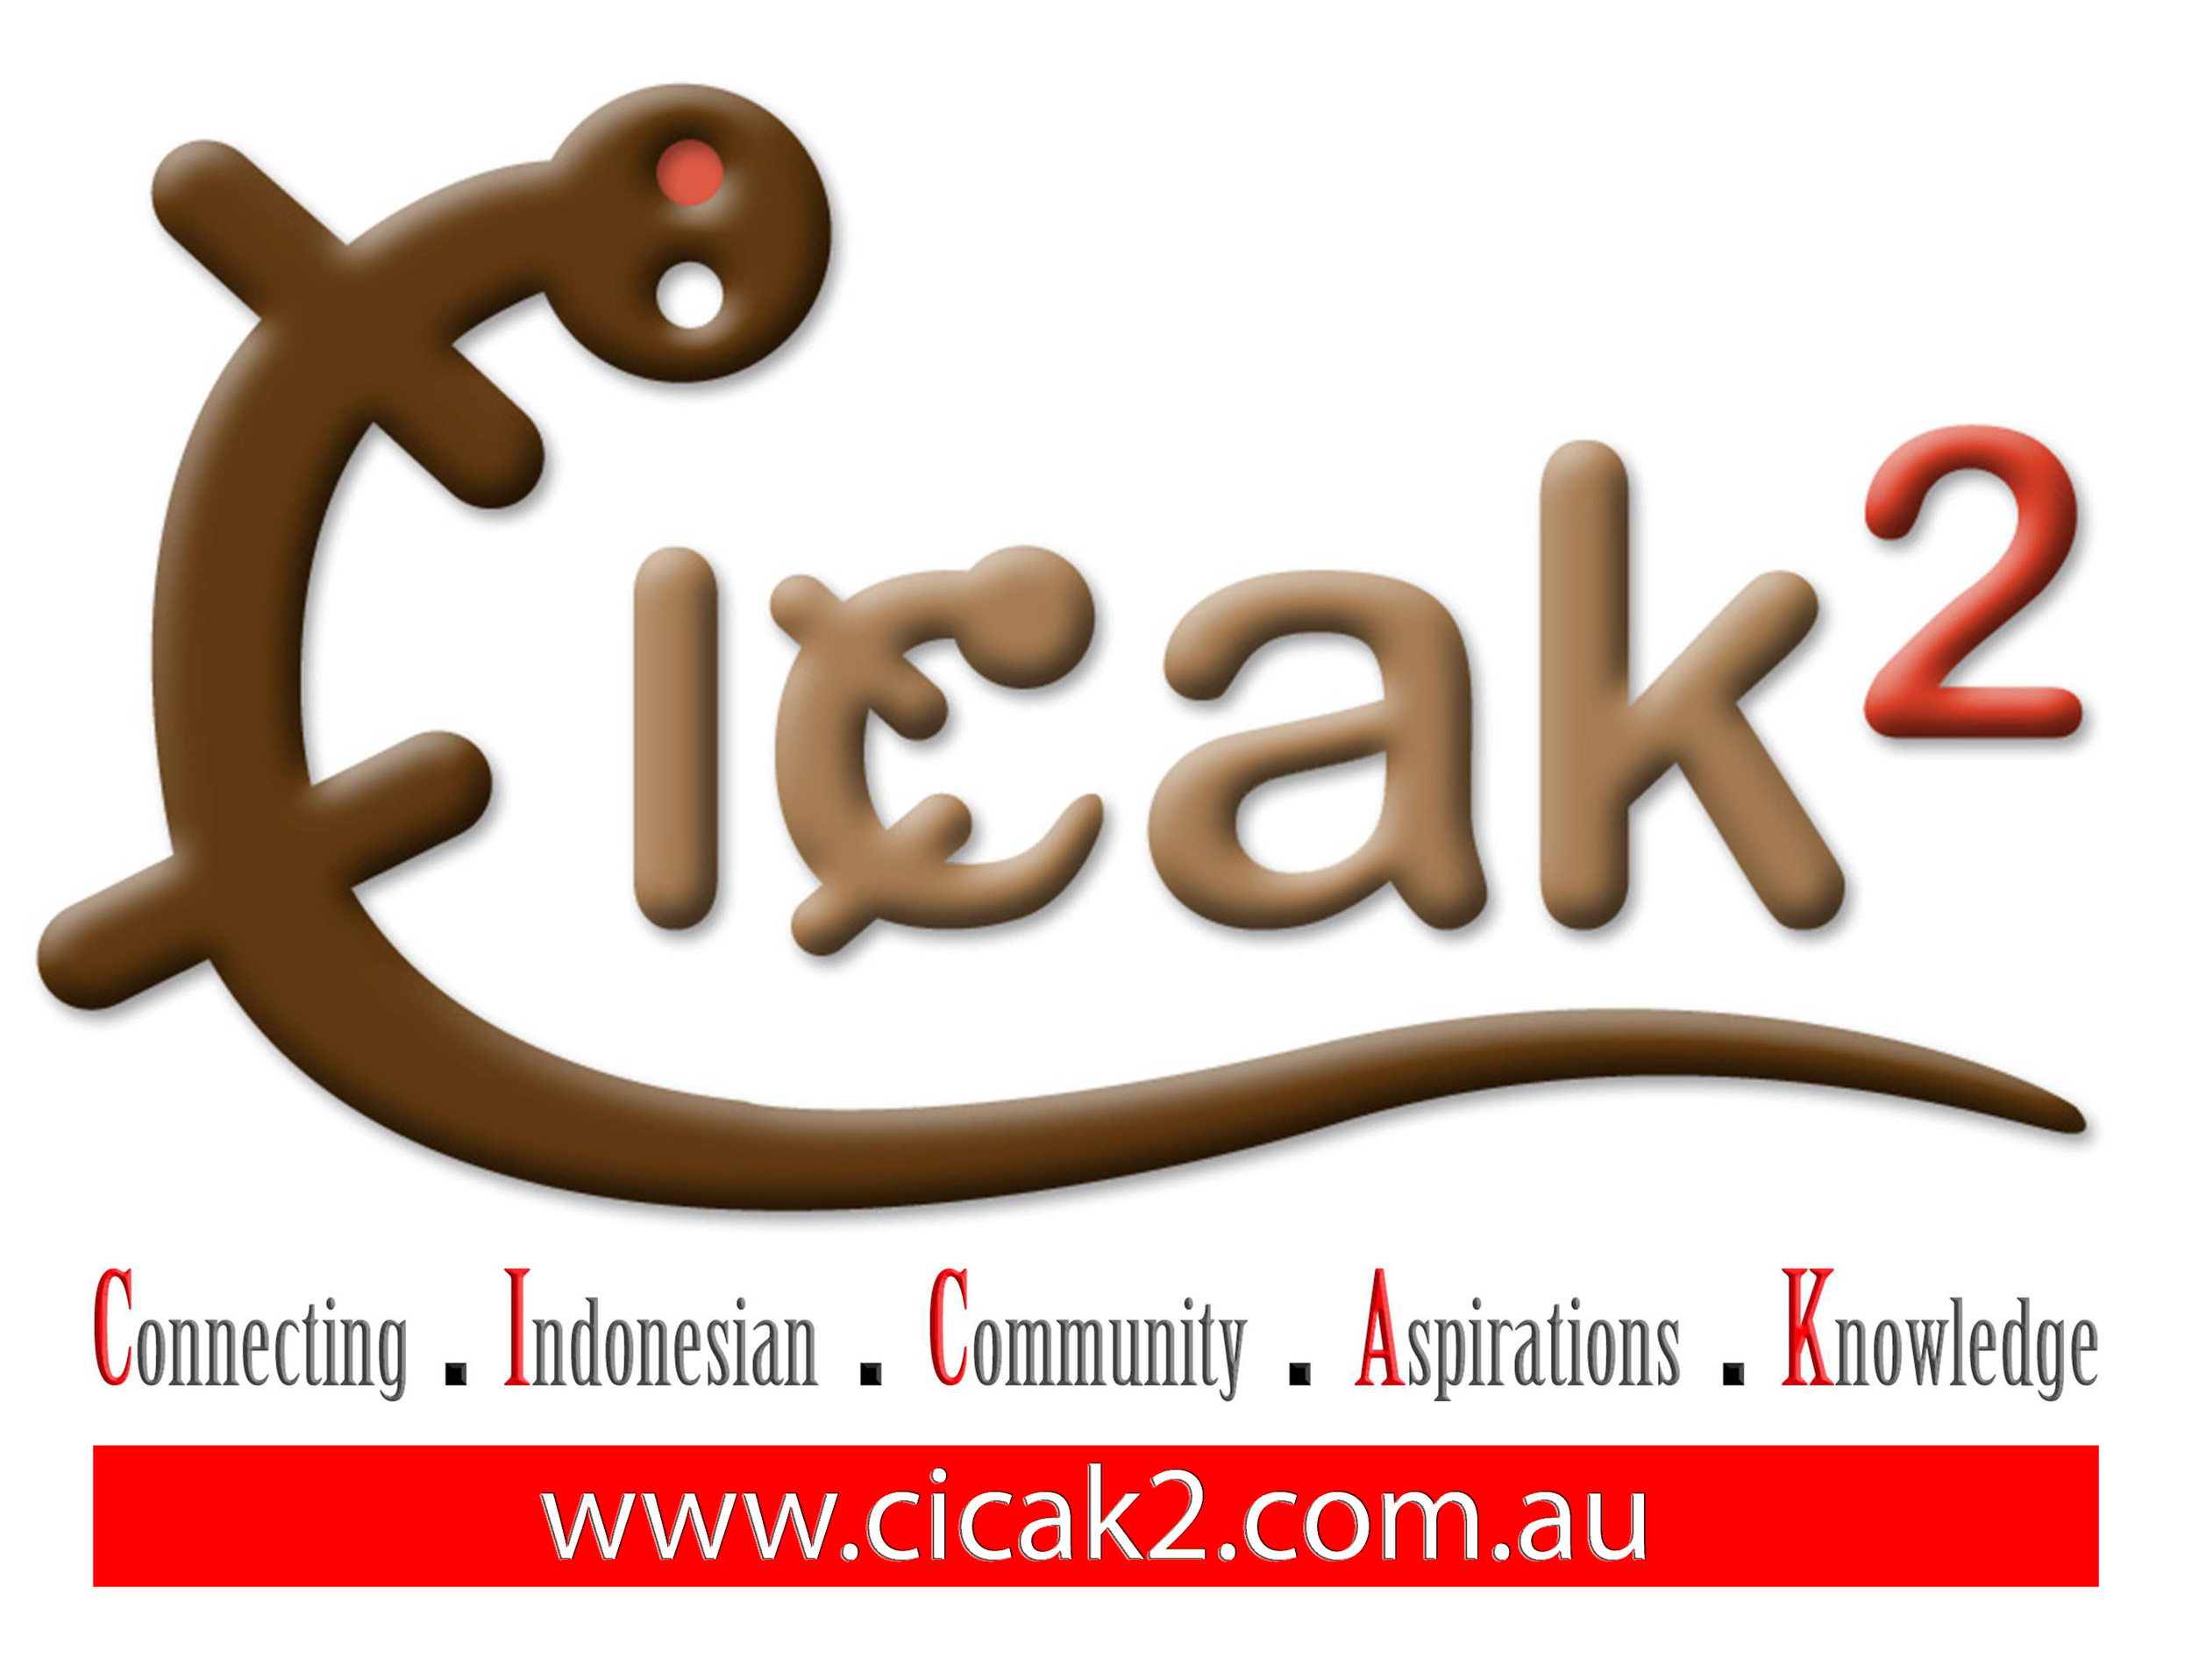 Cicak2 Logo for Sponsorship 2014.jpg